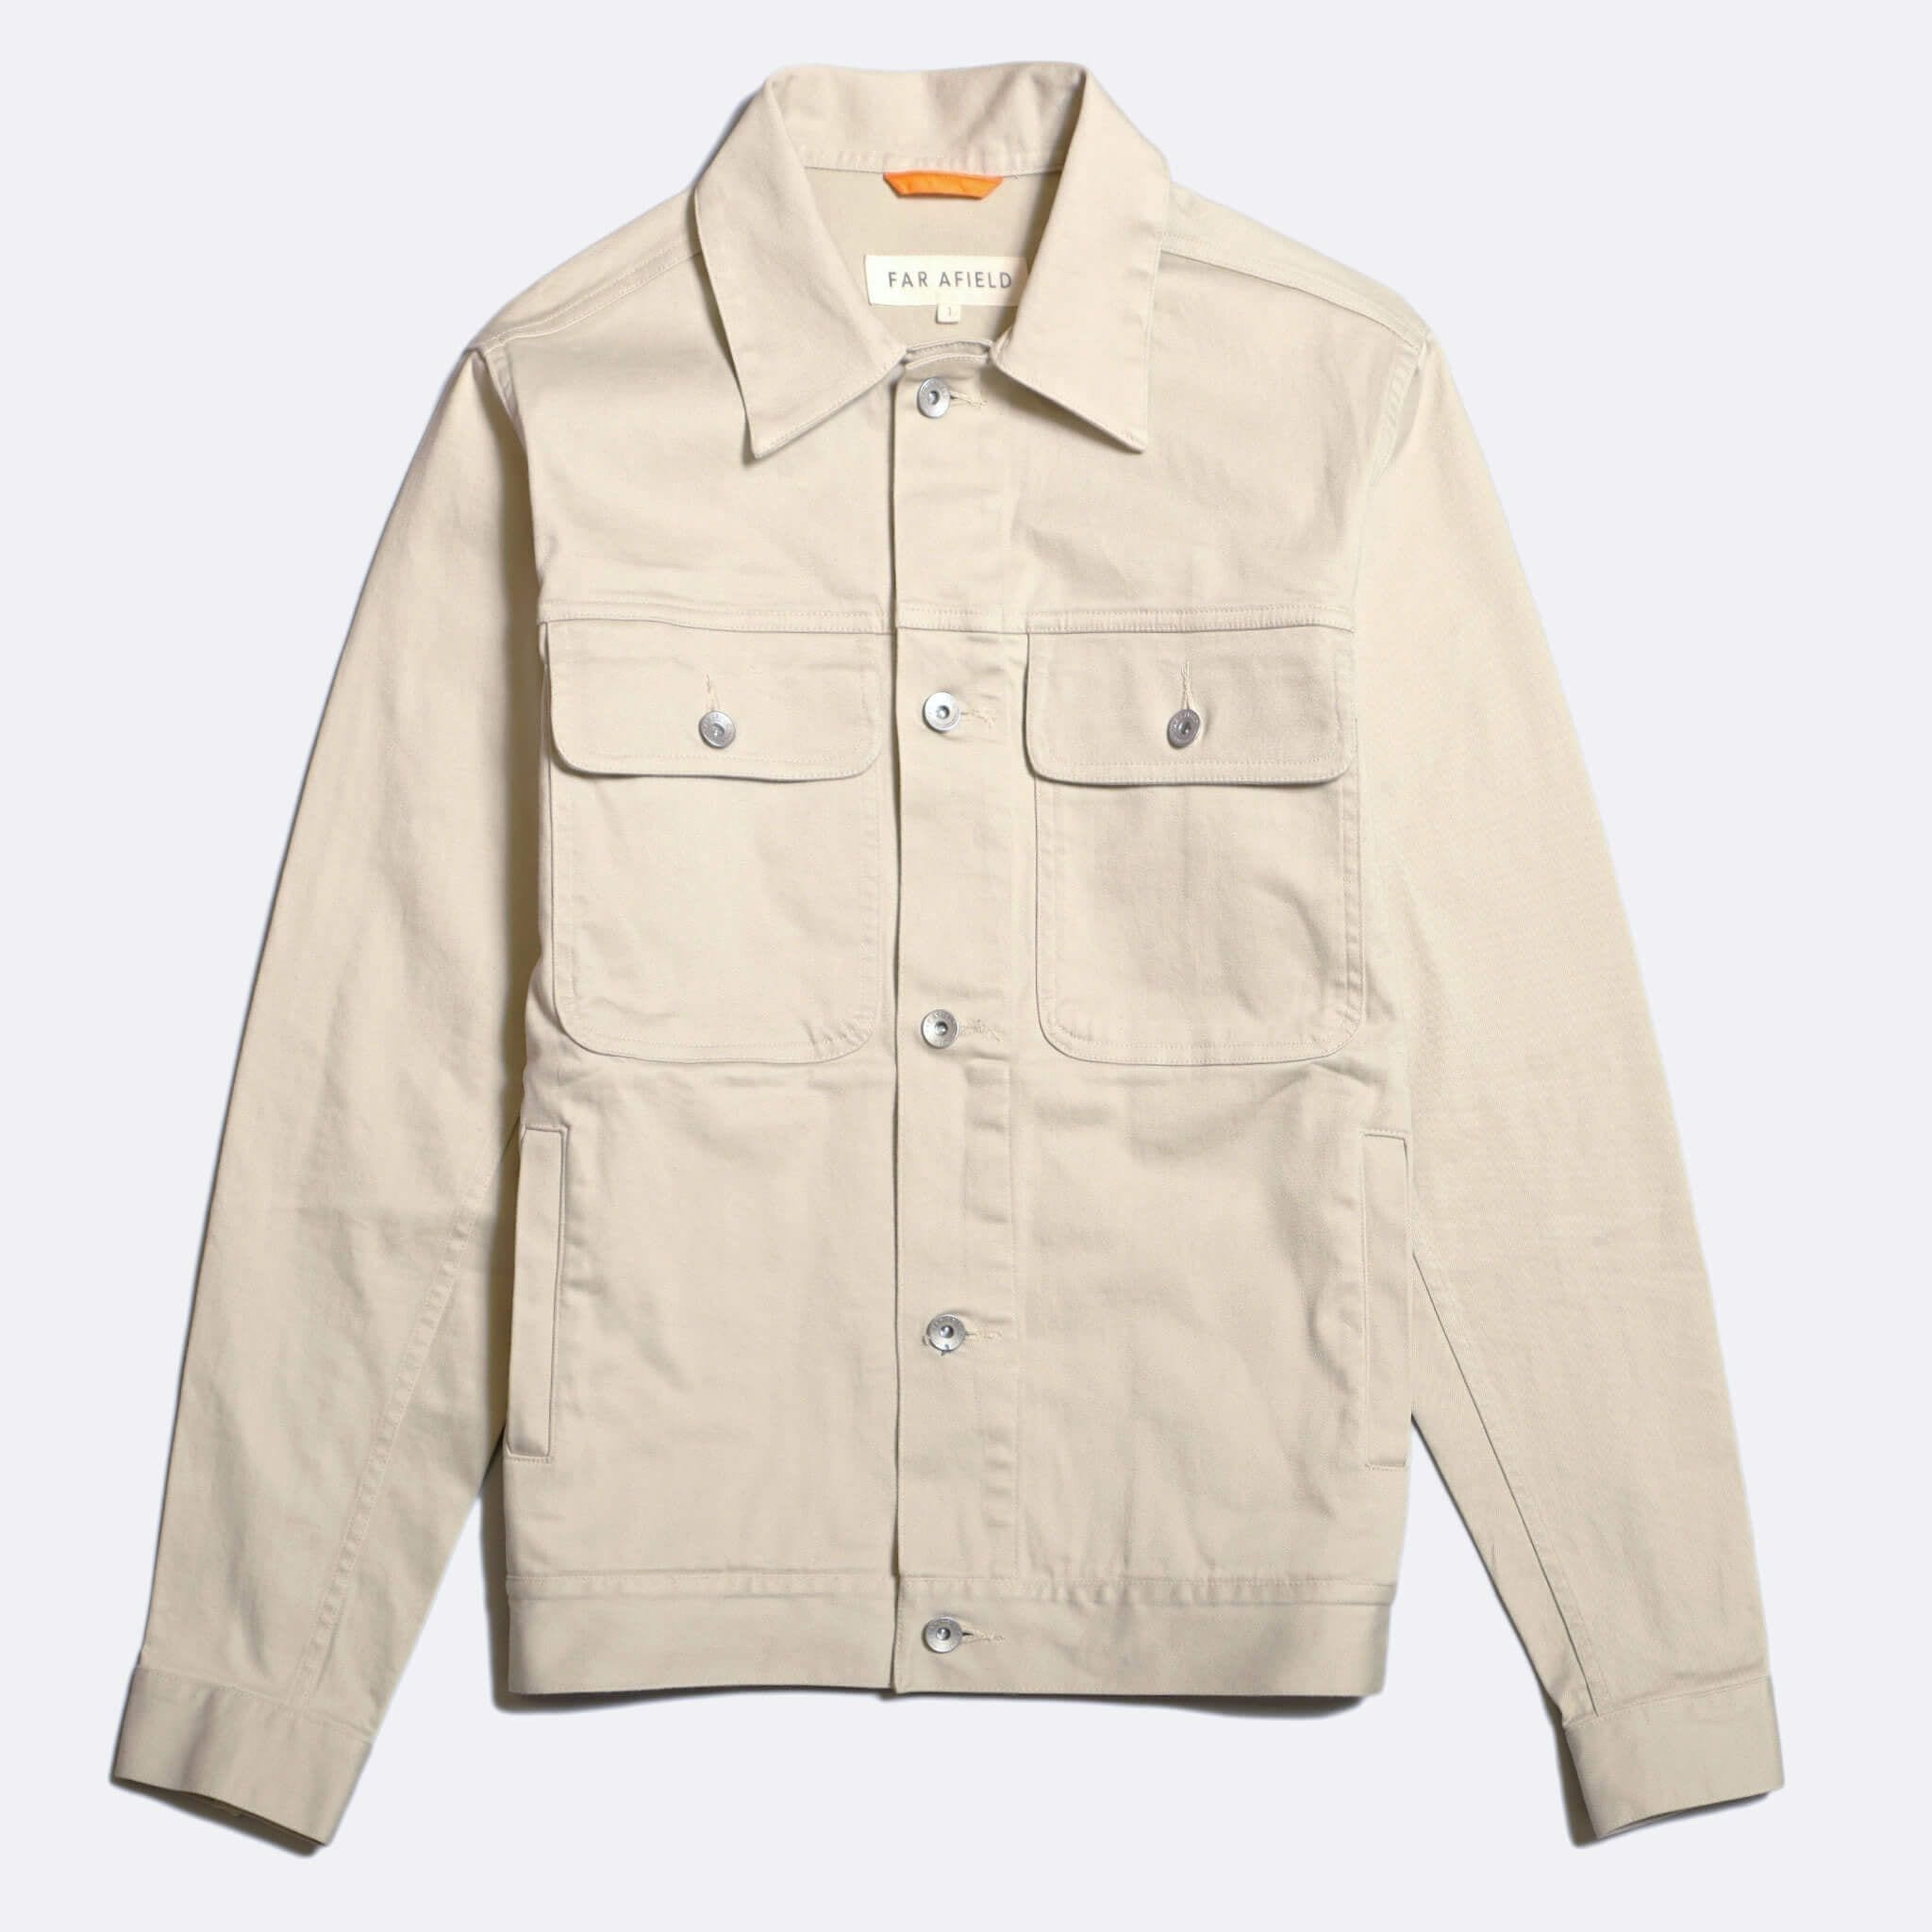 Far Afield Watts Jacket a Pumice Stone BCI Cotton/Cotton Twill Fabric Trucker Casual Work